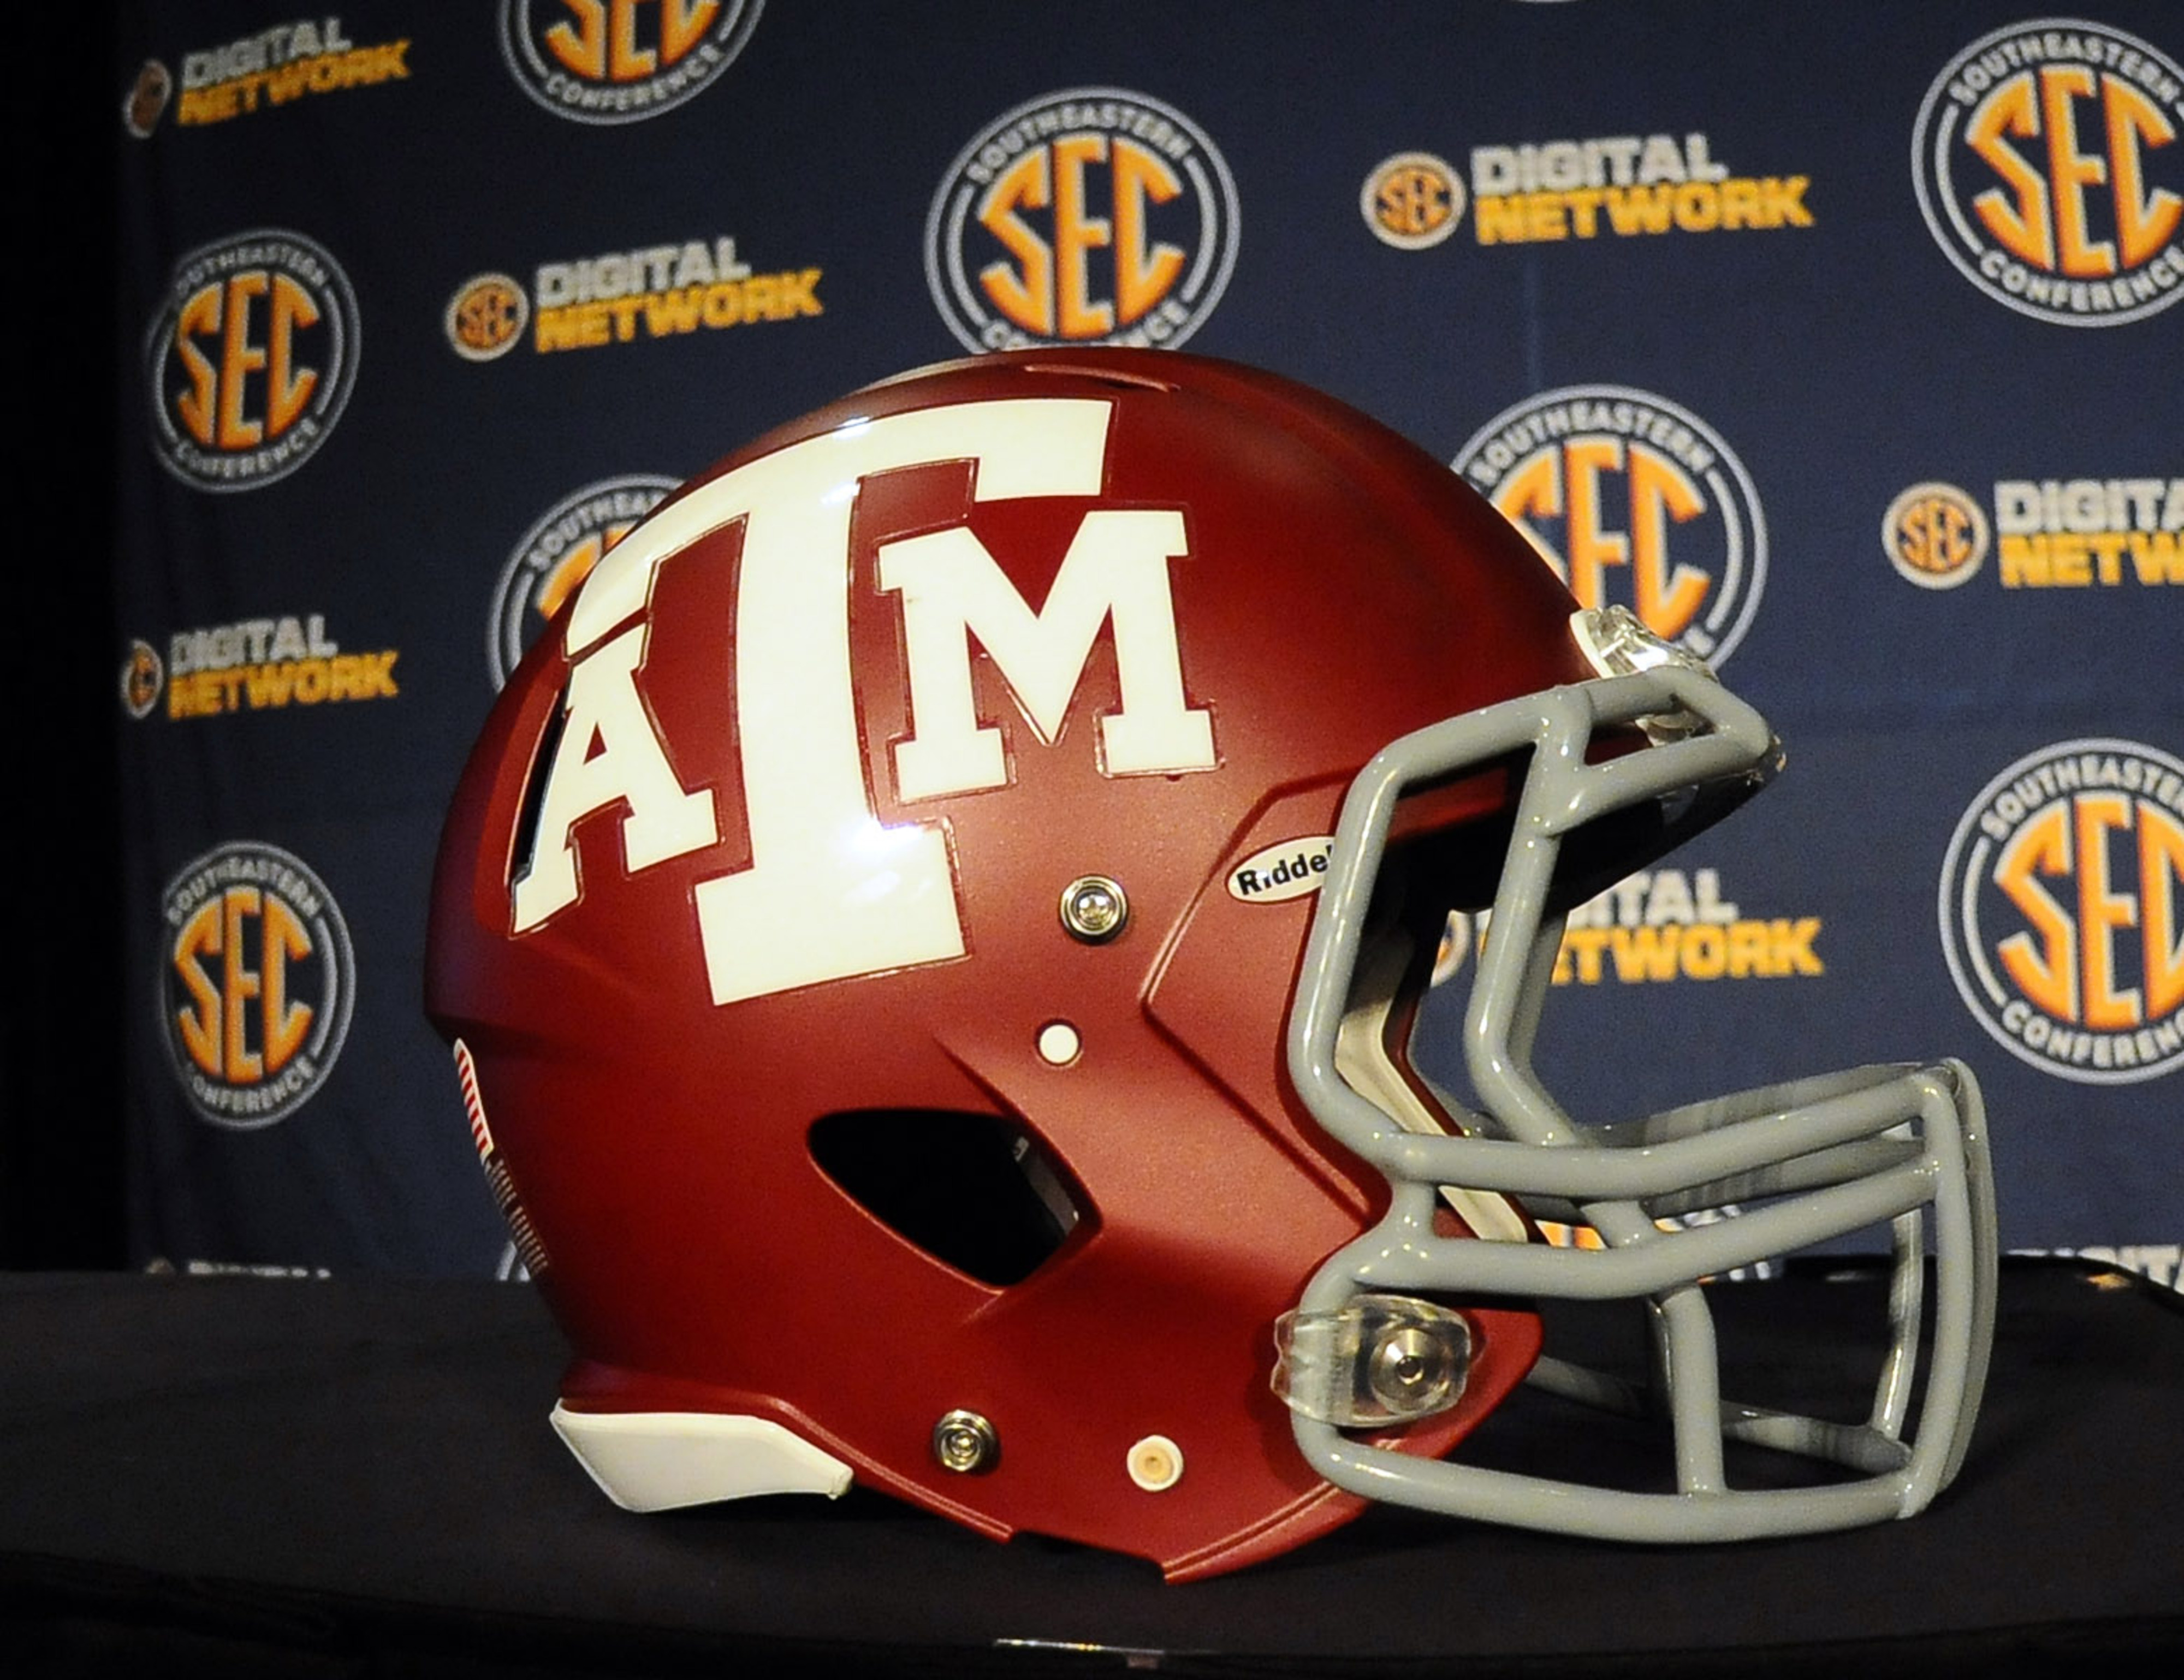 July 17, 2012; Hoover, AL, USA;  Texas A&M Aggies helmet sits in front of an SEC backdrop during the 2012 SEC media days event at the Wynfrey Hotel.   Mandatory Credit: Kelly Lambert-US PRESSWIRE